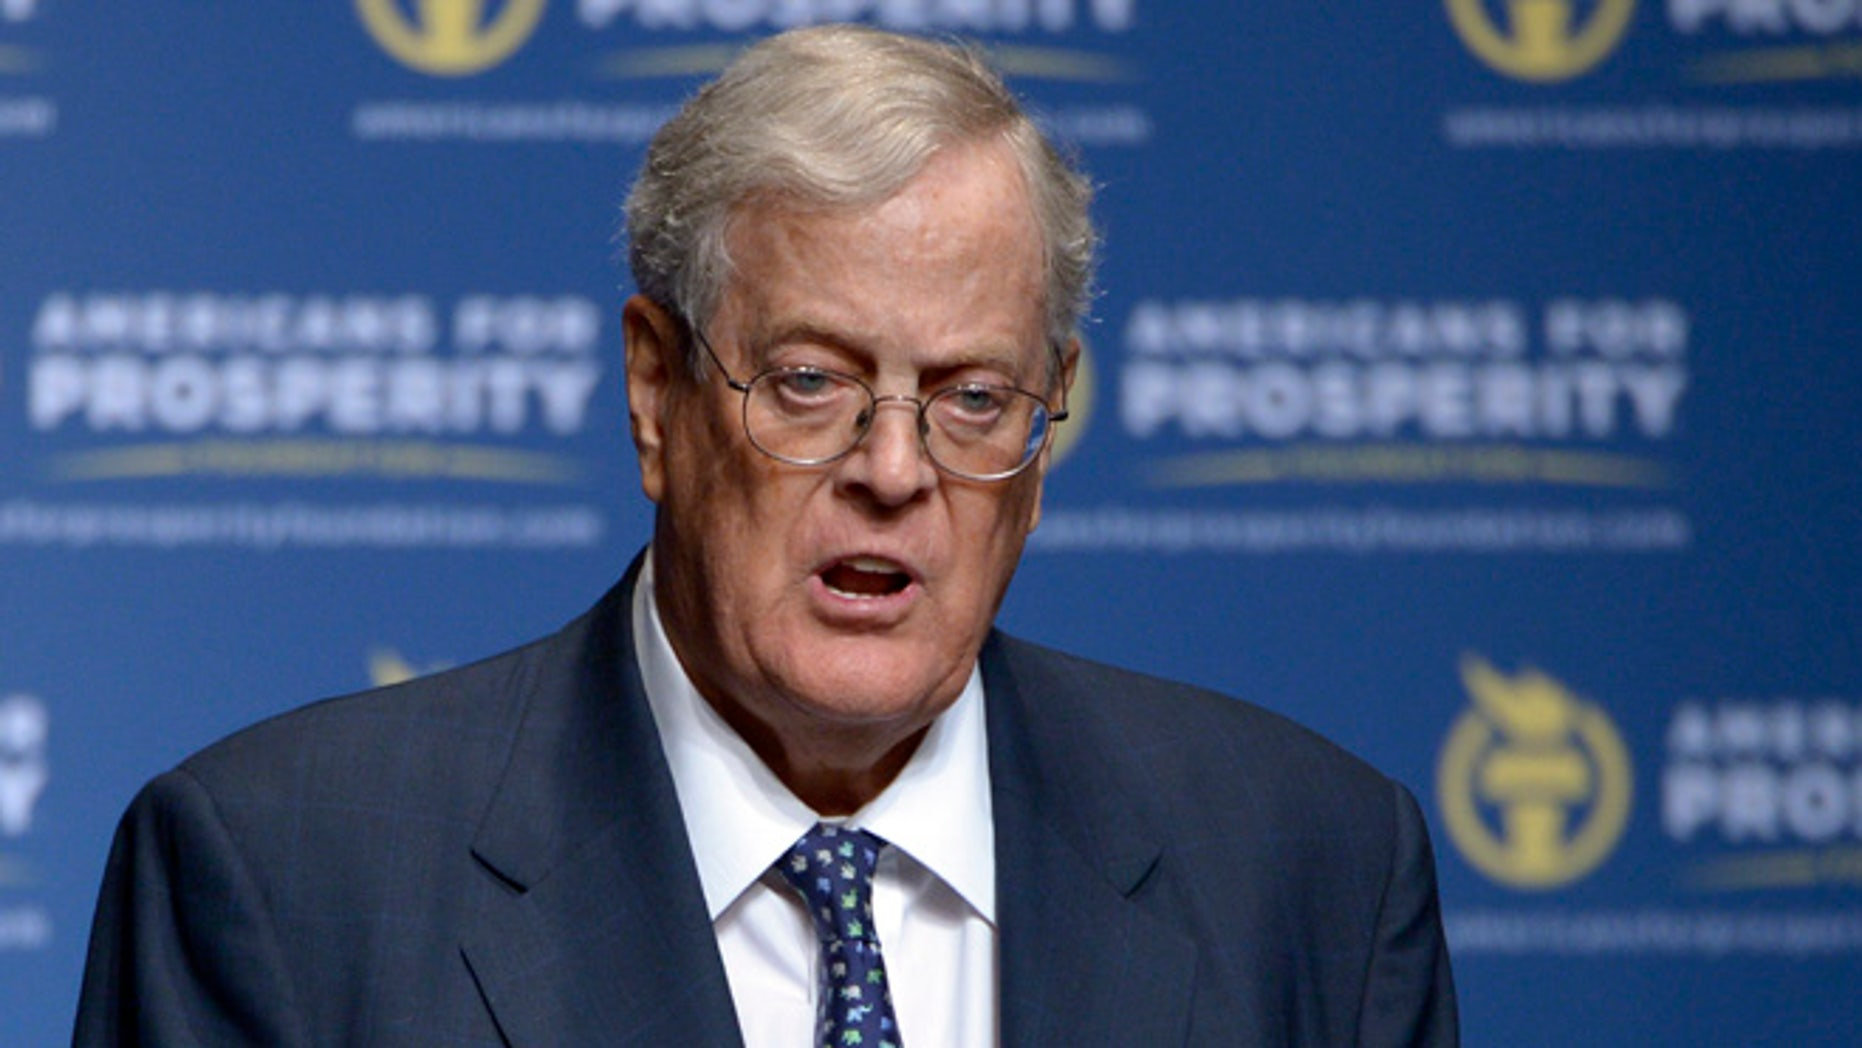 FILE - In this Aug. 30, 2013 file photo, David Koch speaks in Orlando, Fla. The Republican door-knockers are busy selling Pennsylvania Sen. Pat Toomey, and they never mention Donald Trump. Such is the 2016 landscape in battleground across the country, where hundreds of activists tied to the billionaire Koch brothers are eschewing the top of the ticket in favor of protecting the Republican majority in the Senate.  (AP Photo/Phelan M. Ebenhack, File)